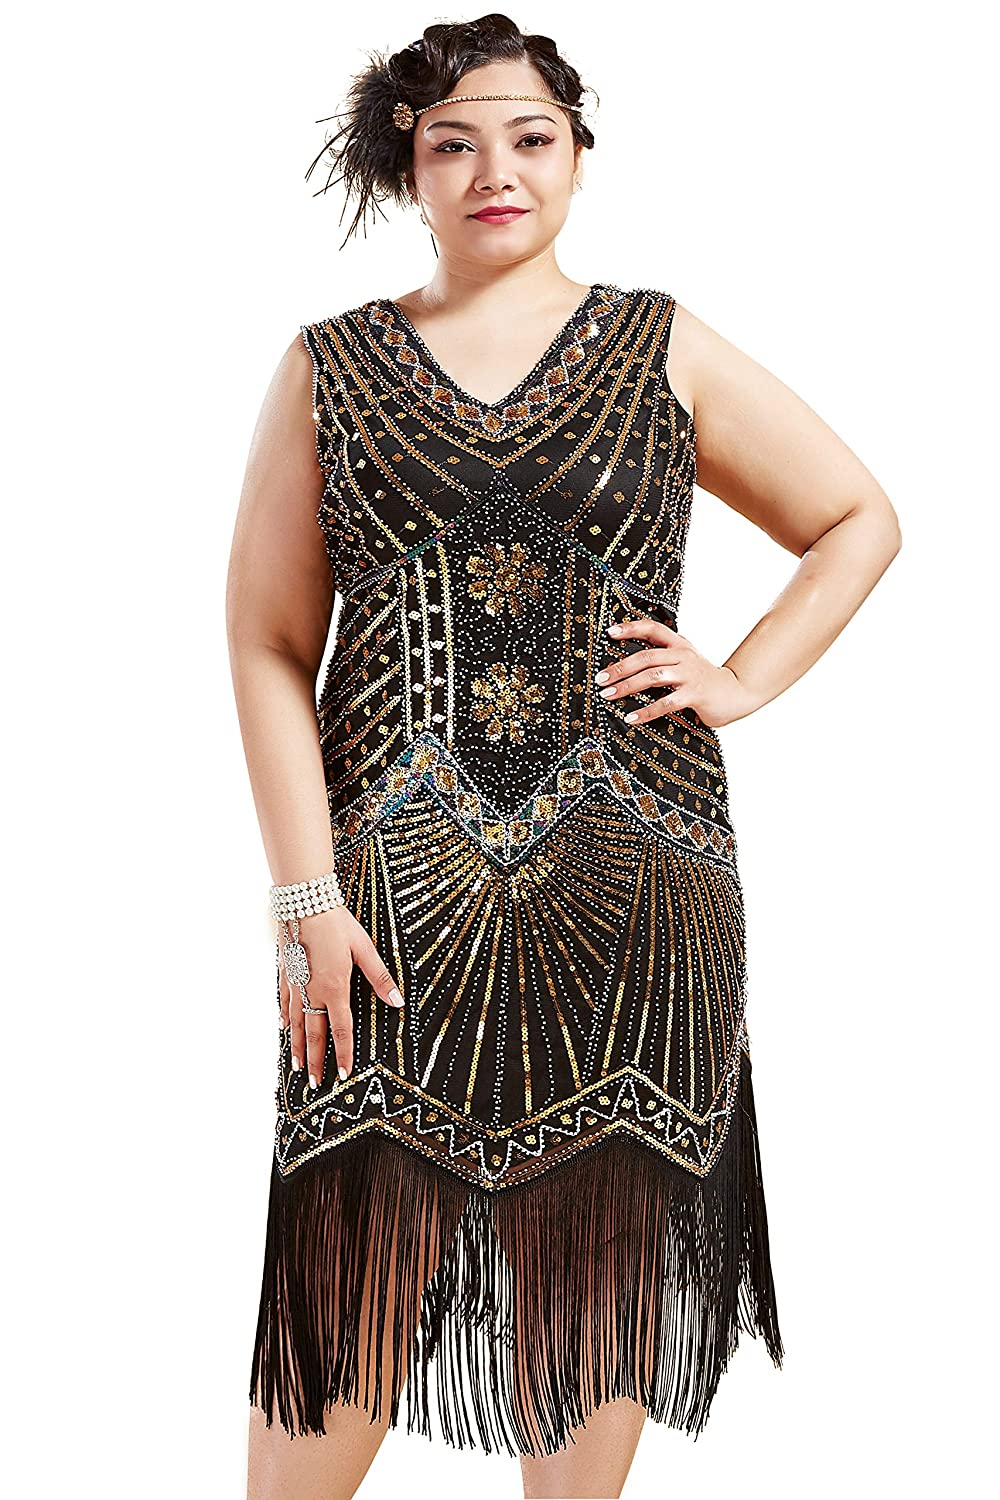 1920s Fashion & Clothing | Roaring 20s Attire BABEYOND Womens Plus Size Flapper Dresses 1920s V Neck Beaded Fringed Great Gatsby Dress $45.99 AT vintagedancer.com